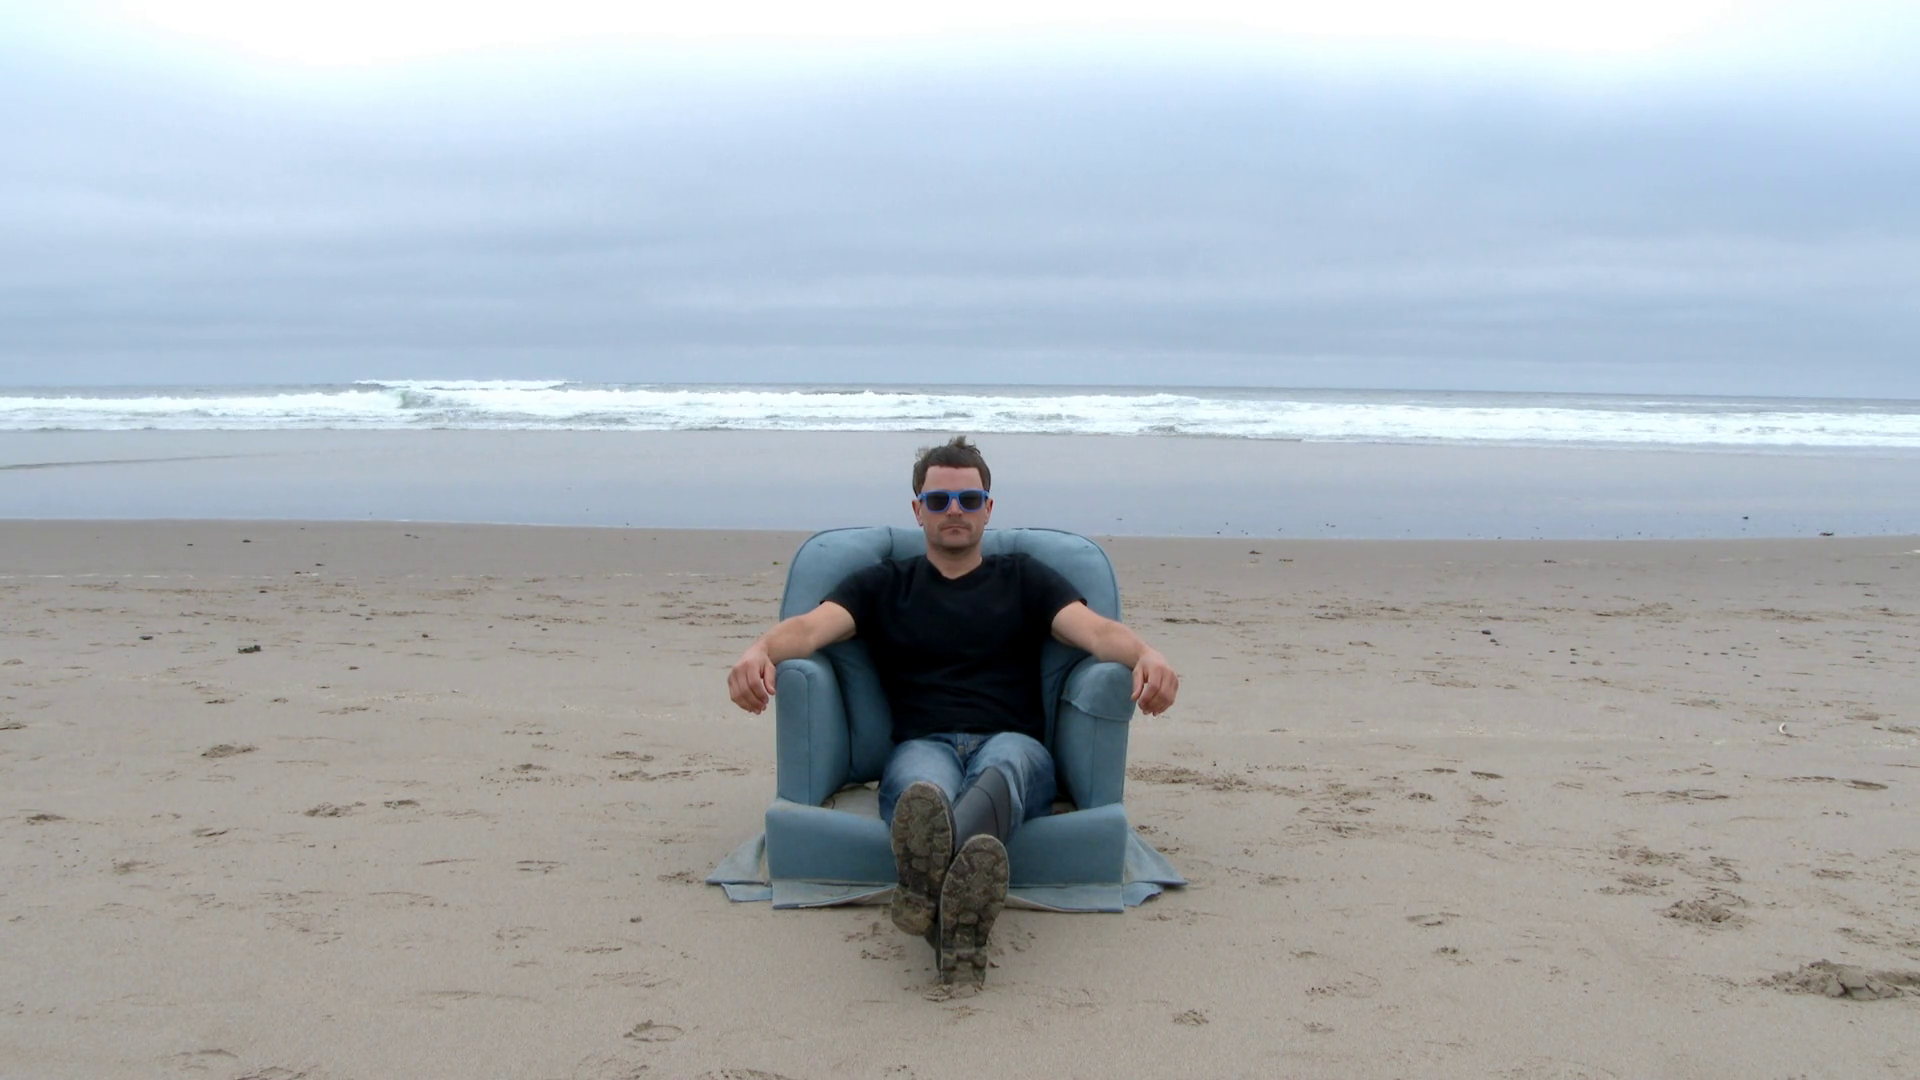 Person Finds A Cozy Sofa Chair On The Beach Stock Video Footage Storyblocks